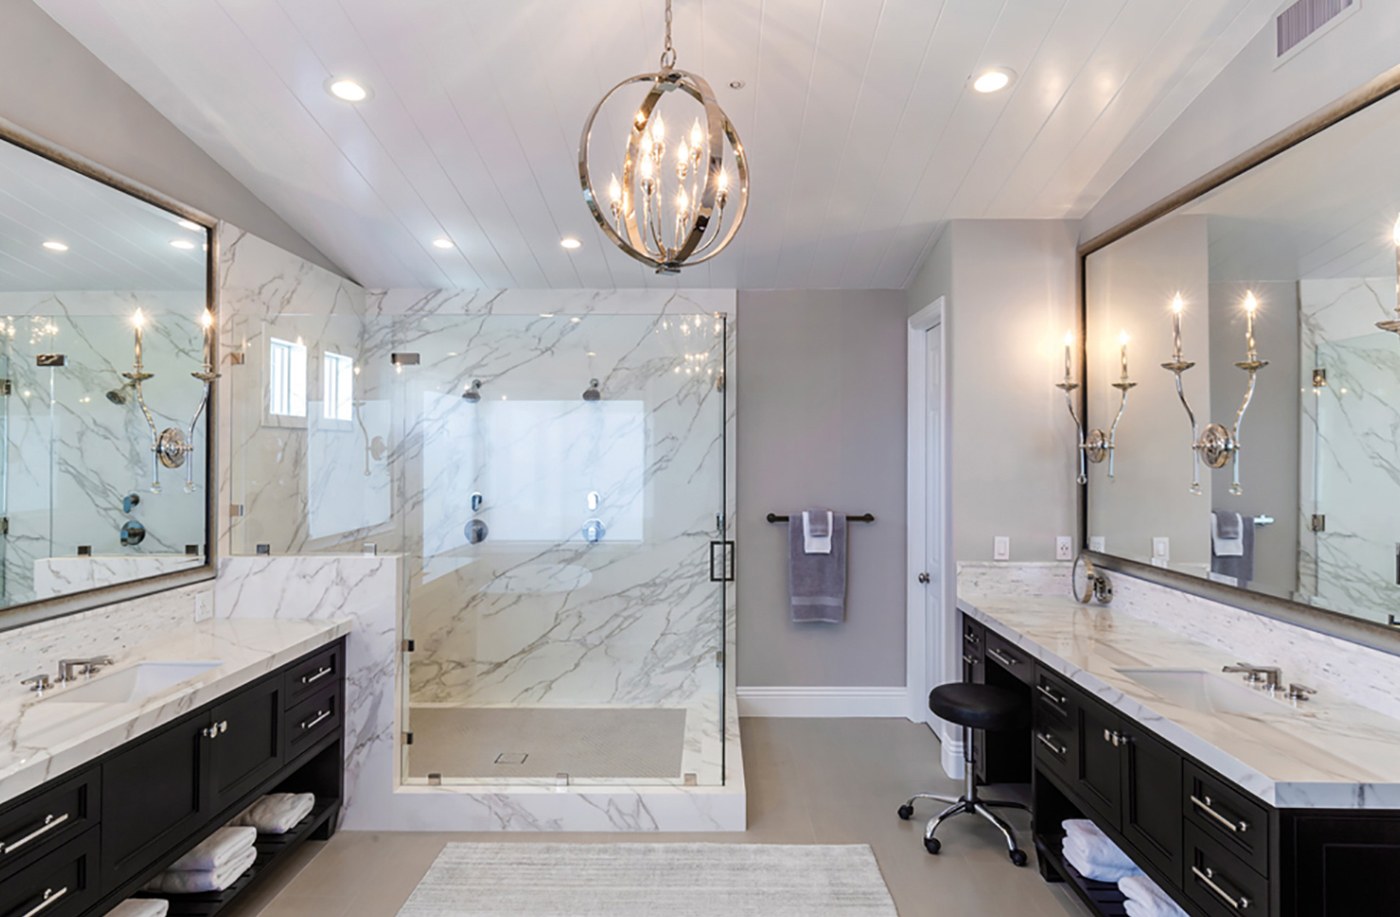 Bathroom design with Neolith